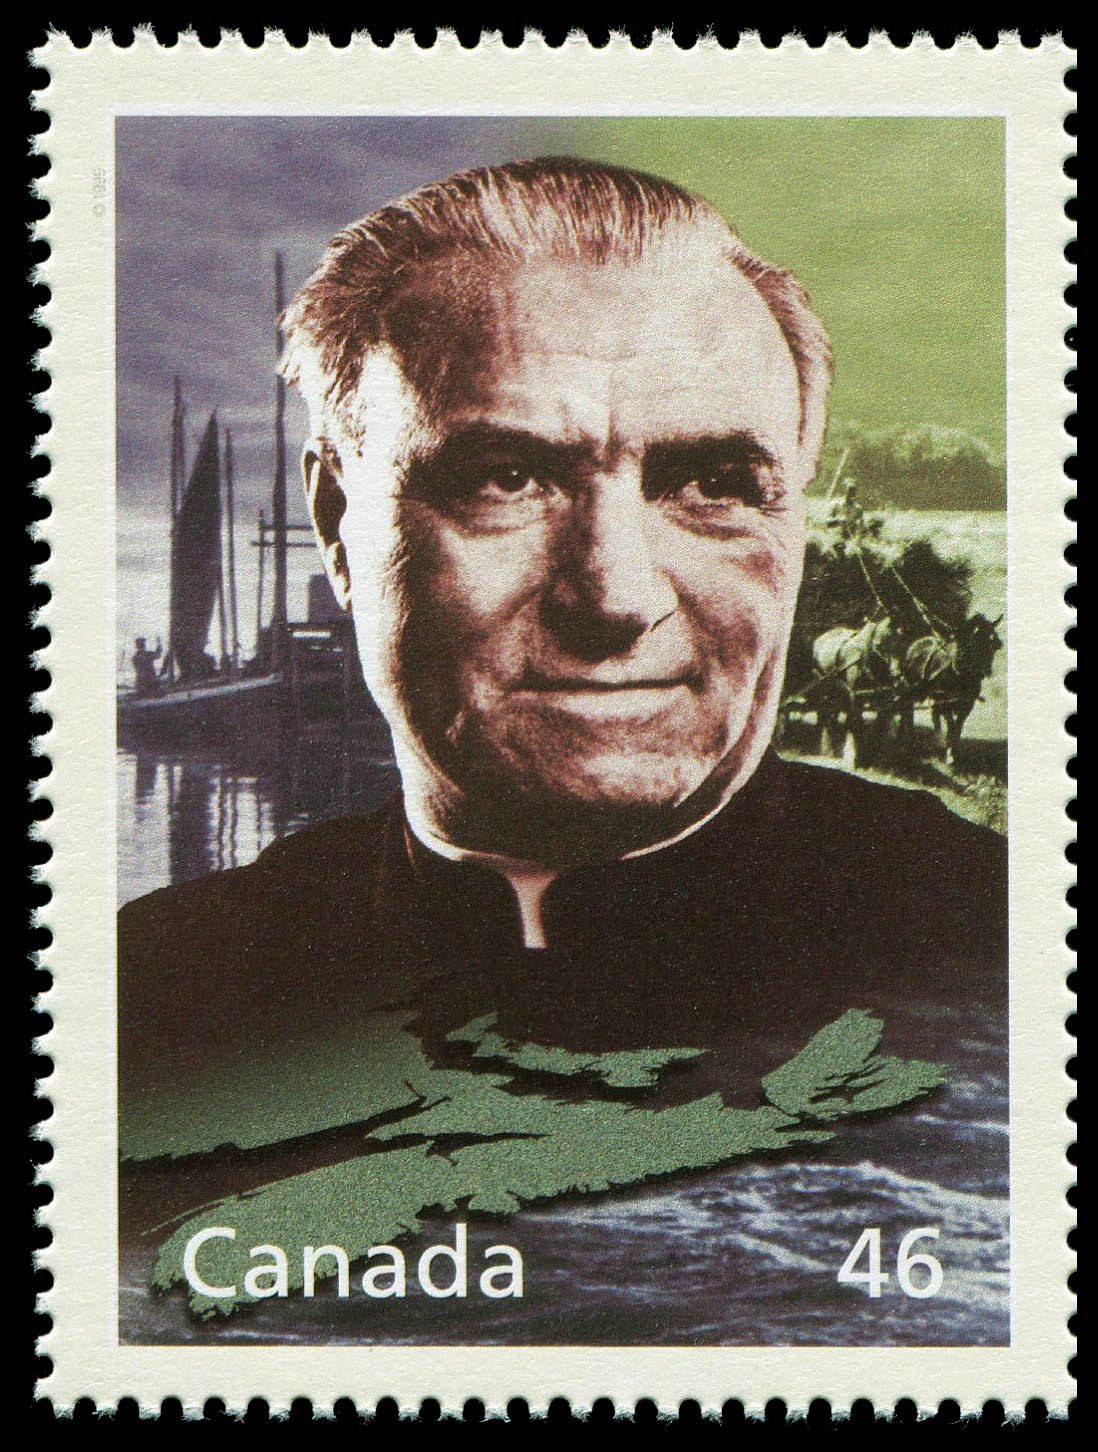 Moses Coady and the Cooperative Movement Canada Postage Stamp